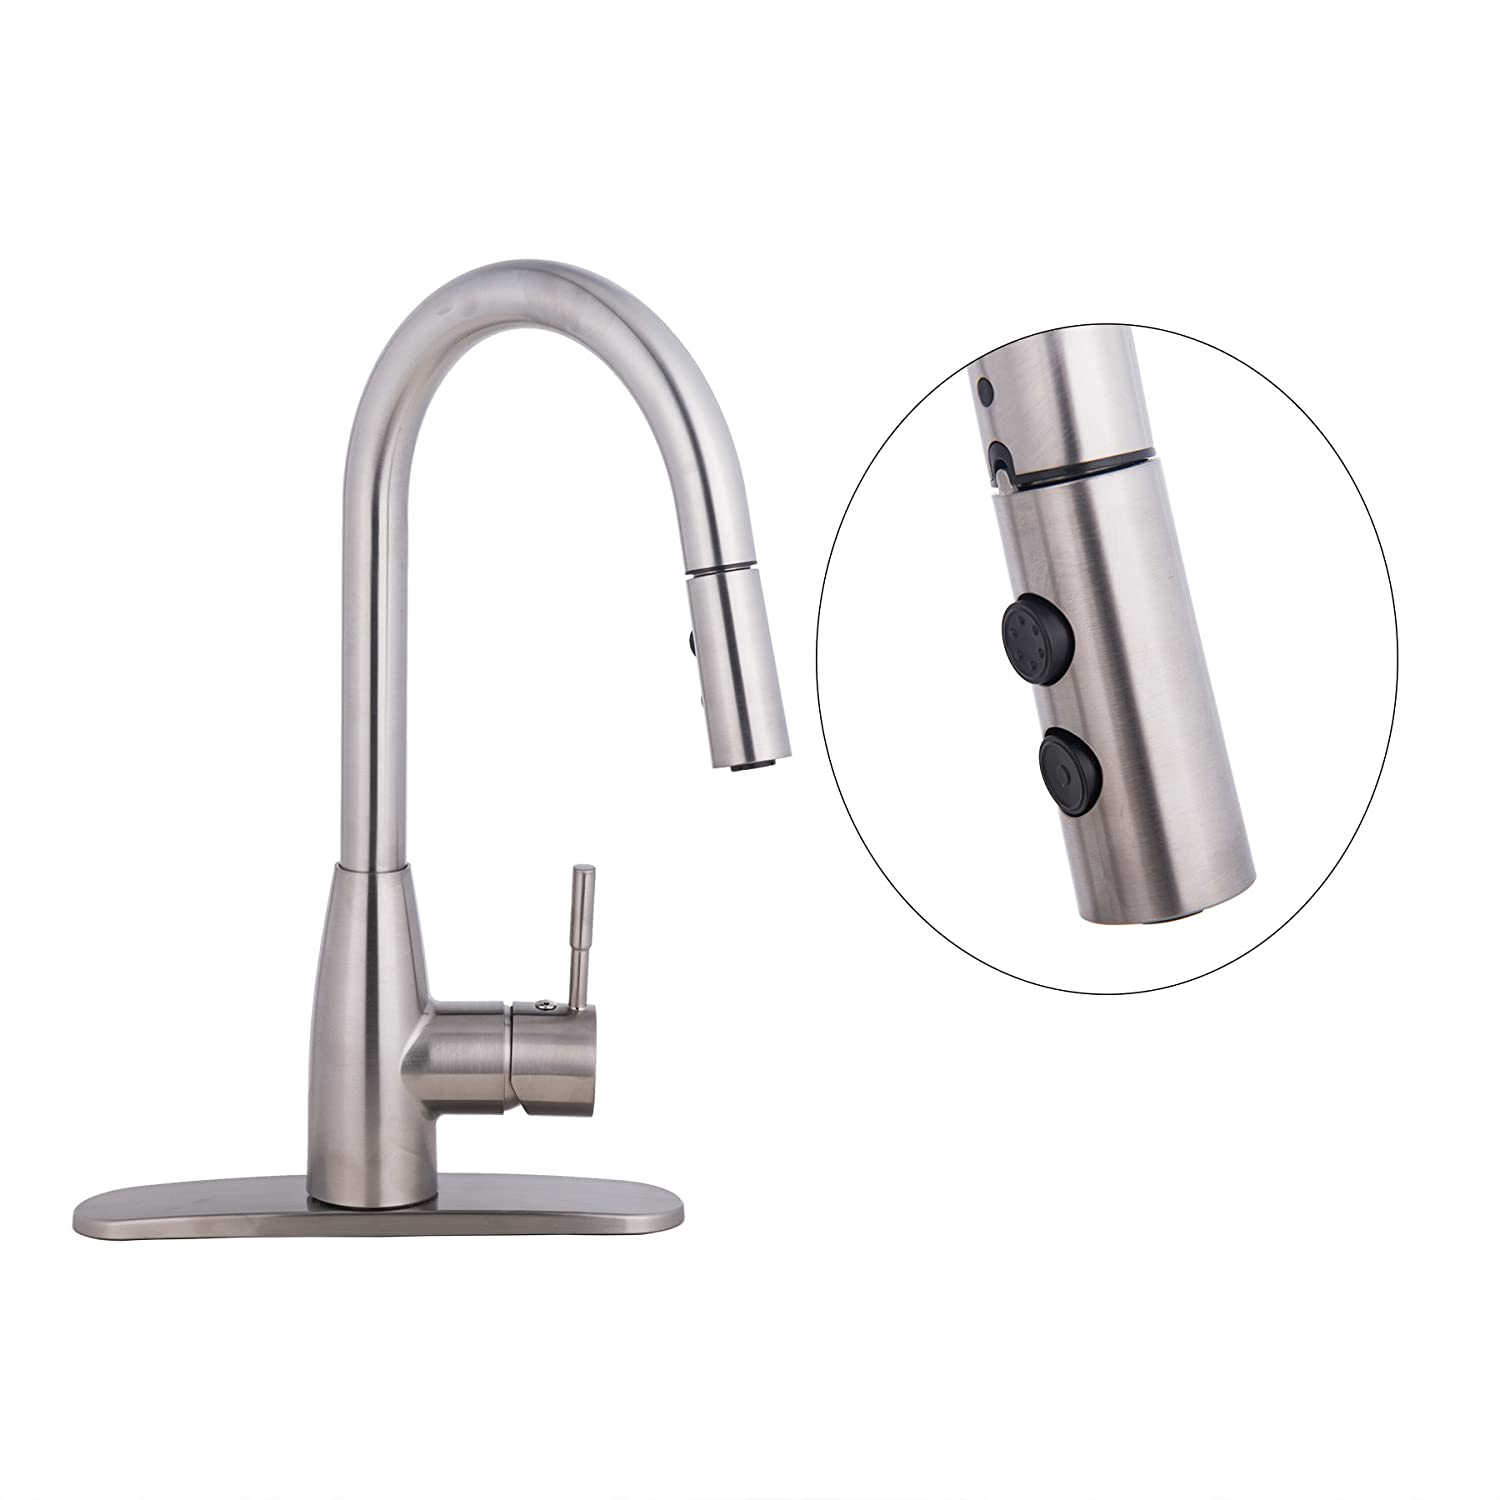 CO-Z Brushed Nickel Kitchen Sink Faucets with Pull Down Sprayer, 360 Swivel Single Handle Faucet with Pullout Sprayer, American Standard Water Faucet Fixtures for RV Kitchen Farmhouse Laundry